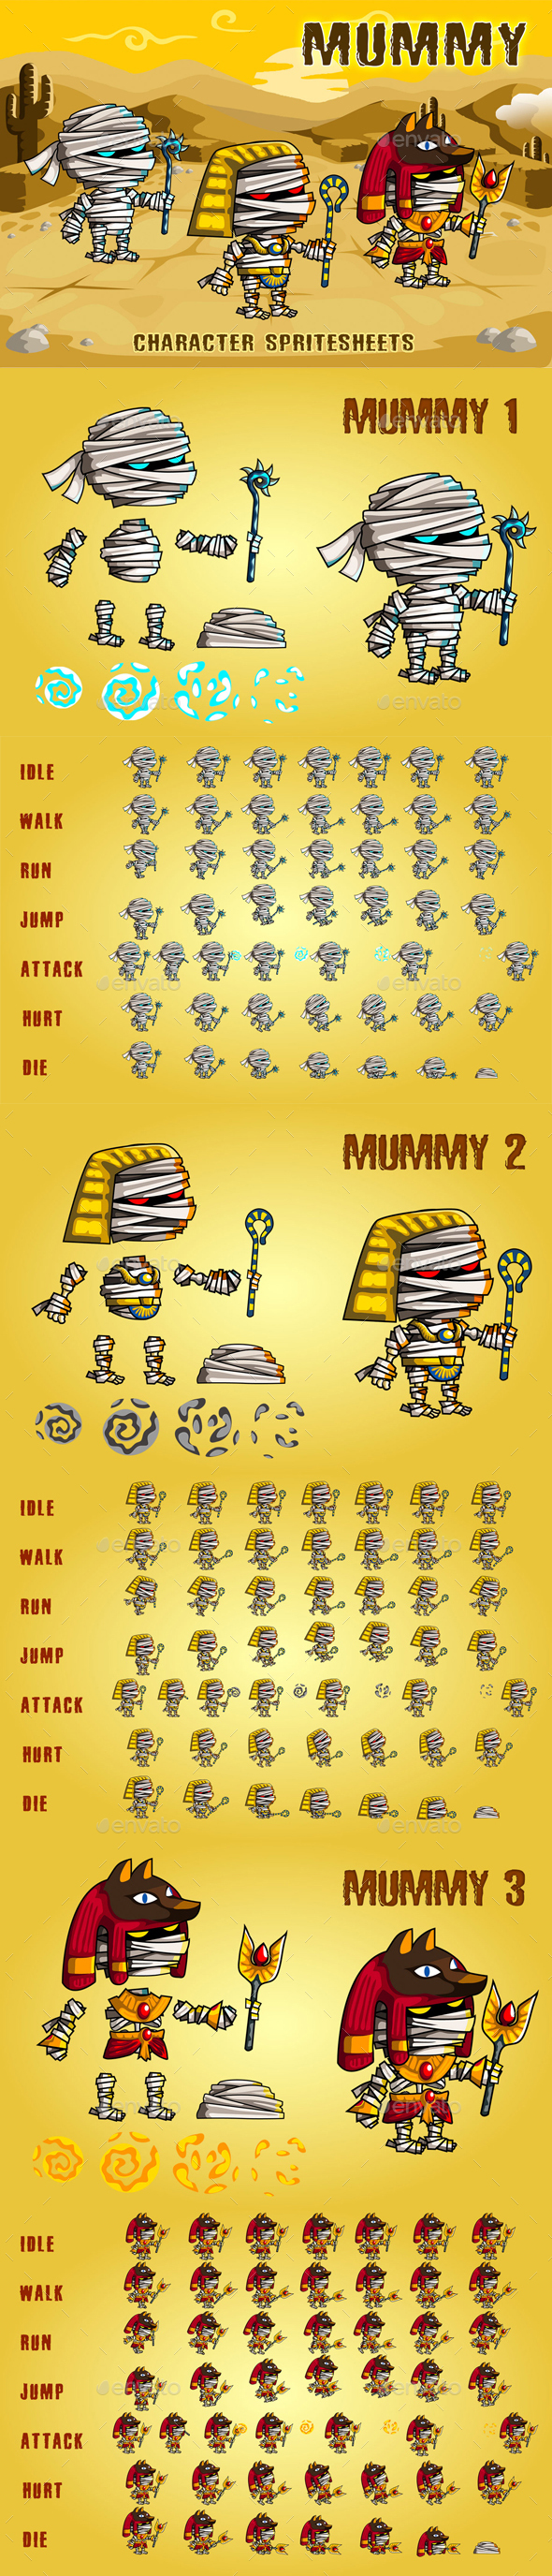 Mummies 2D Game Character Sprite Sheet - Sprites Game Assets